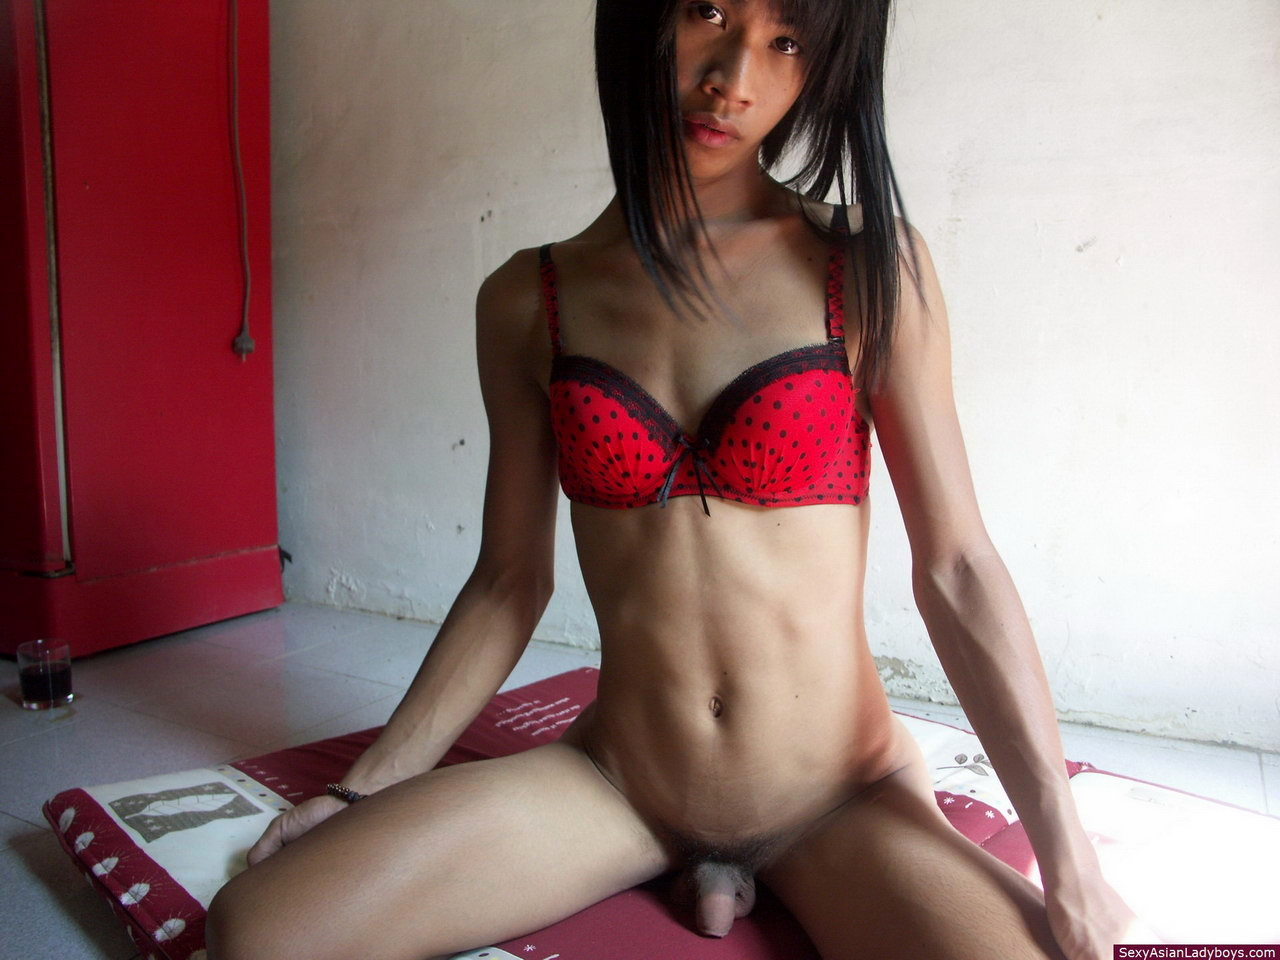 Enjoy Your Erotic Vacations With This Romantic Asian Femboy